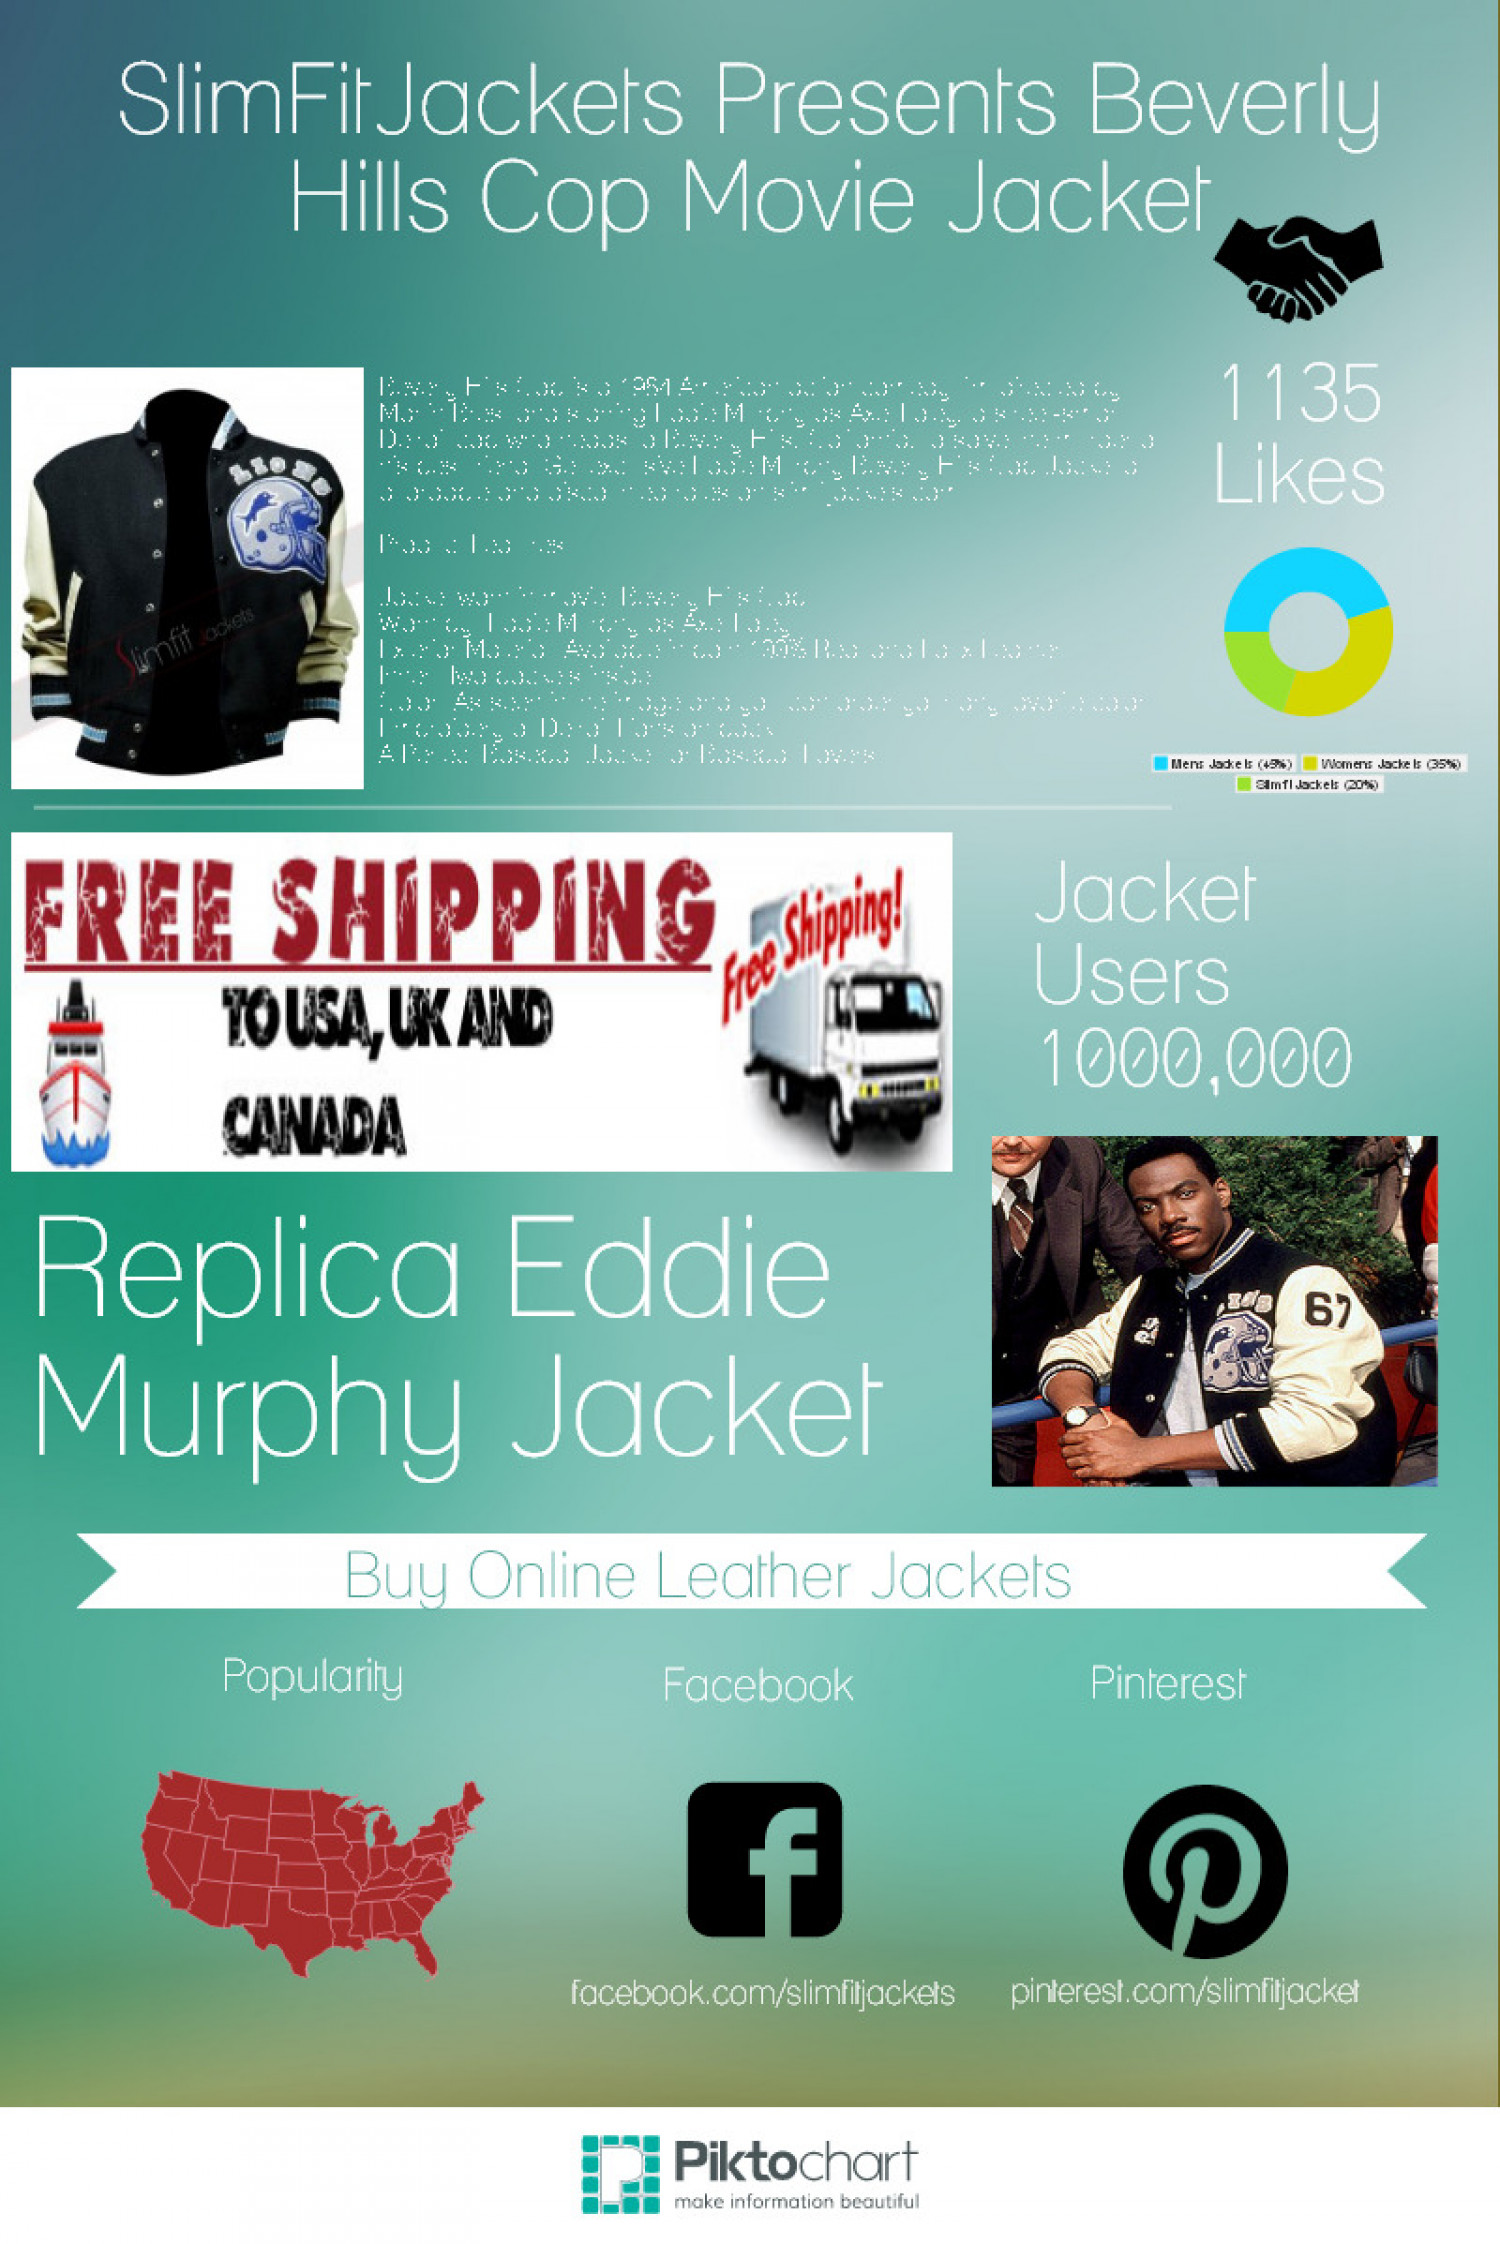 Beverly Hills Cop Movie Jacket Of Axel Foley Infographic